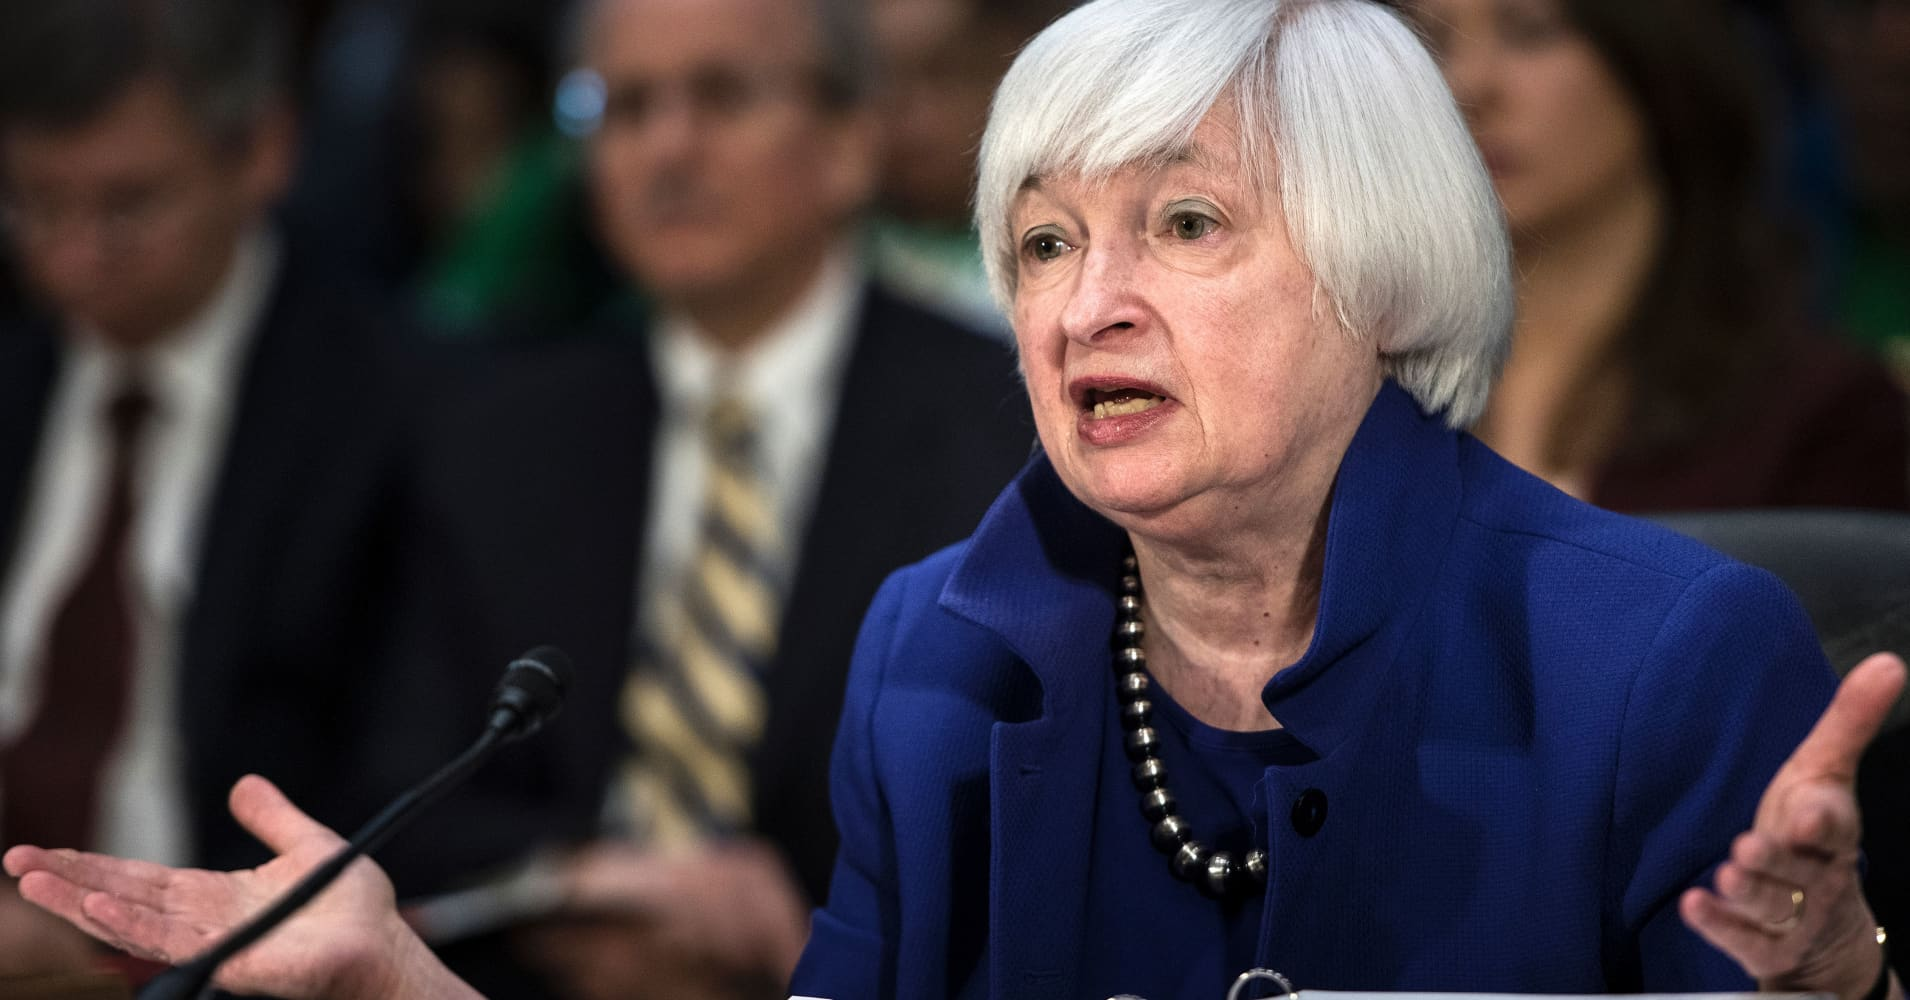 Fed signals interest rate hike coming soon, but doubts remain on how much rates can rise